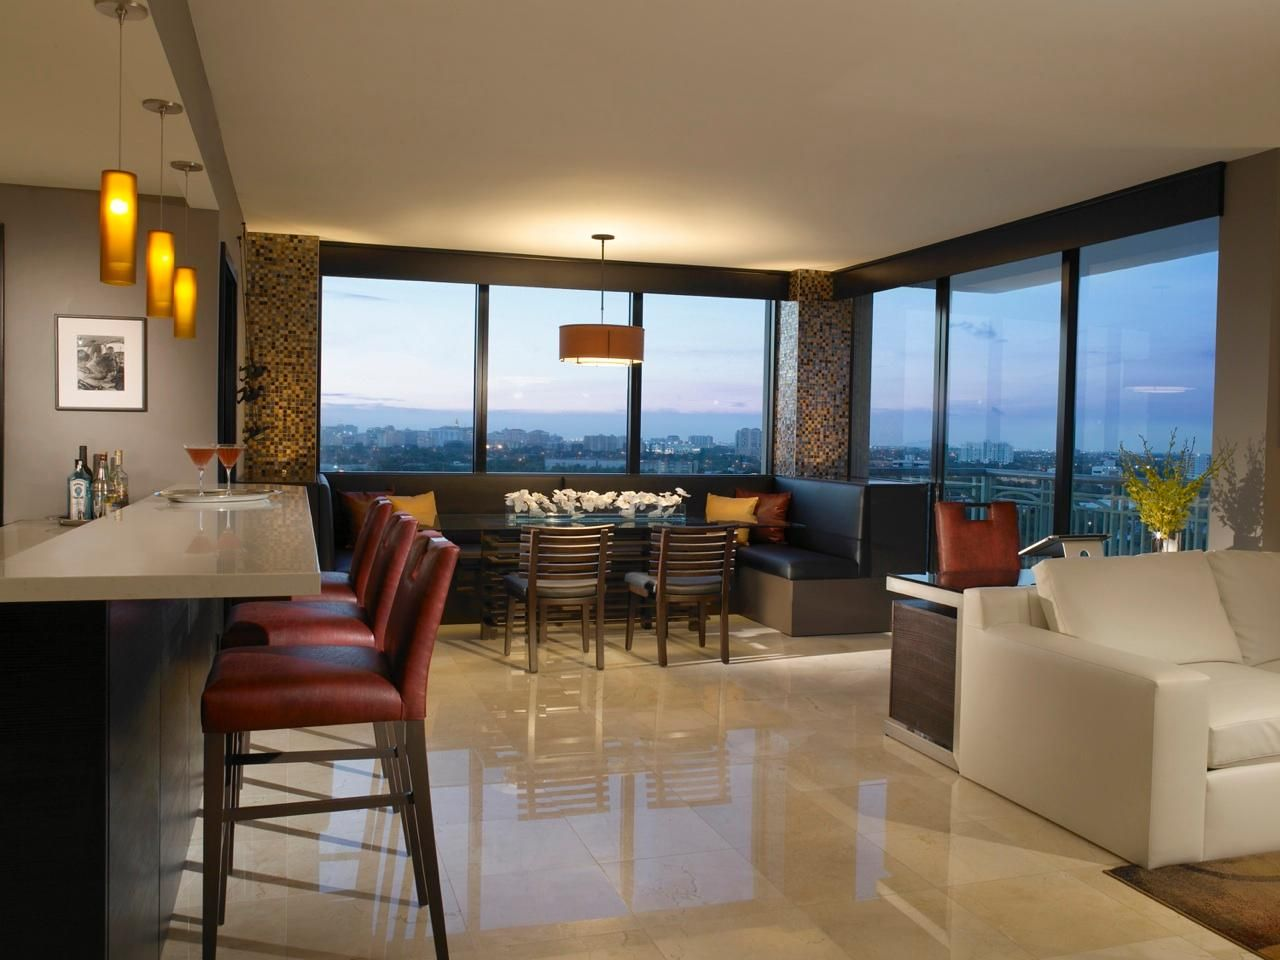 This modern dining room with an open floor plan is perfect for entertaining with an oversized banquette that seats 10 and bar area. Floor to ceiling windows offer a stunning panoramic view of the city skyline creating a perfect backdrop.